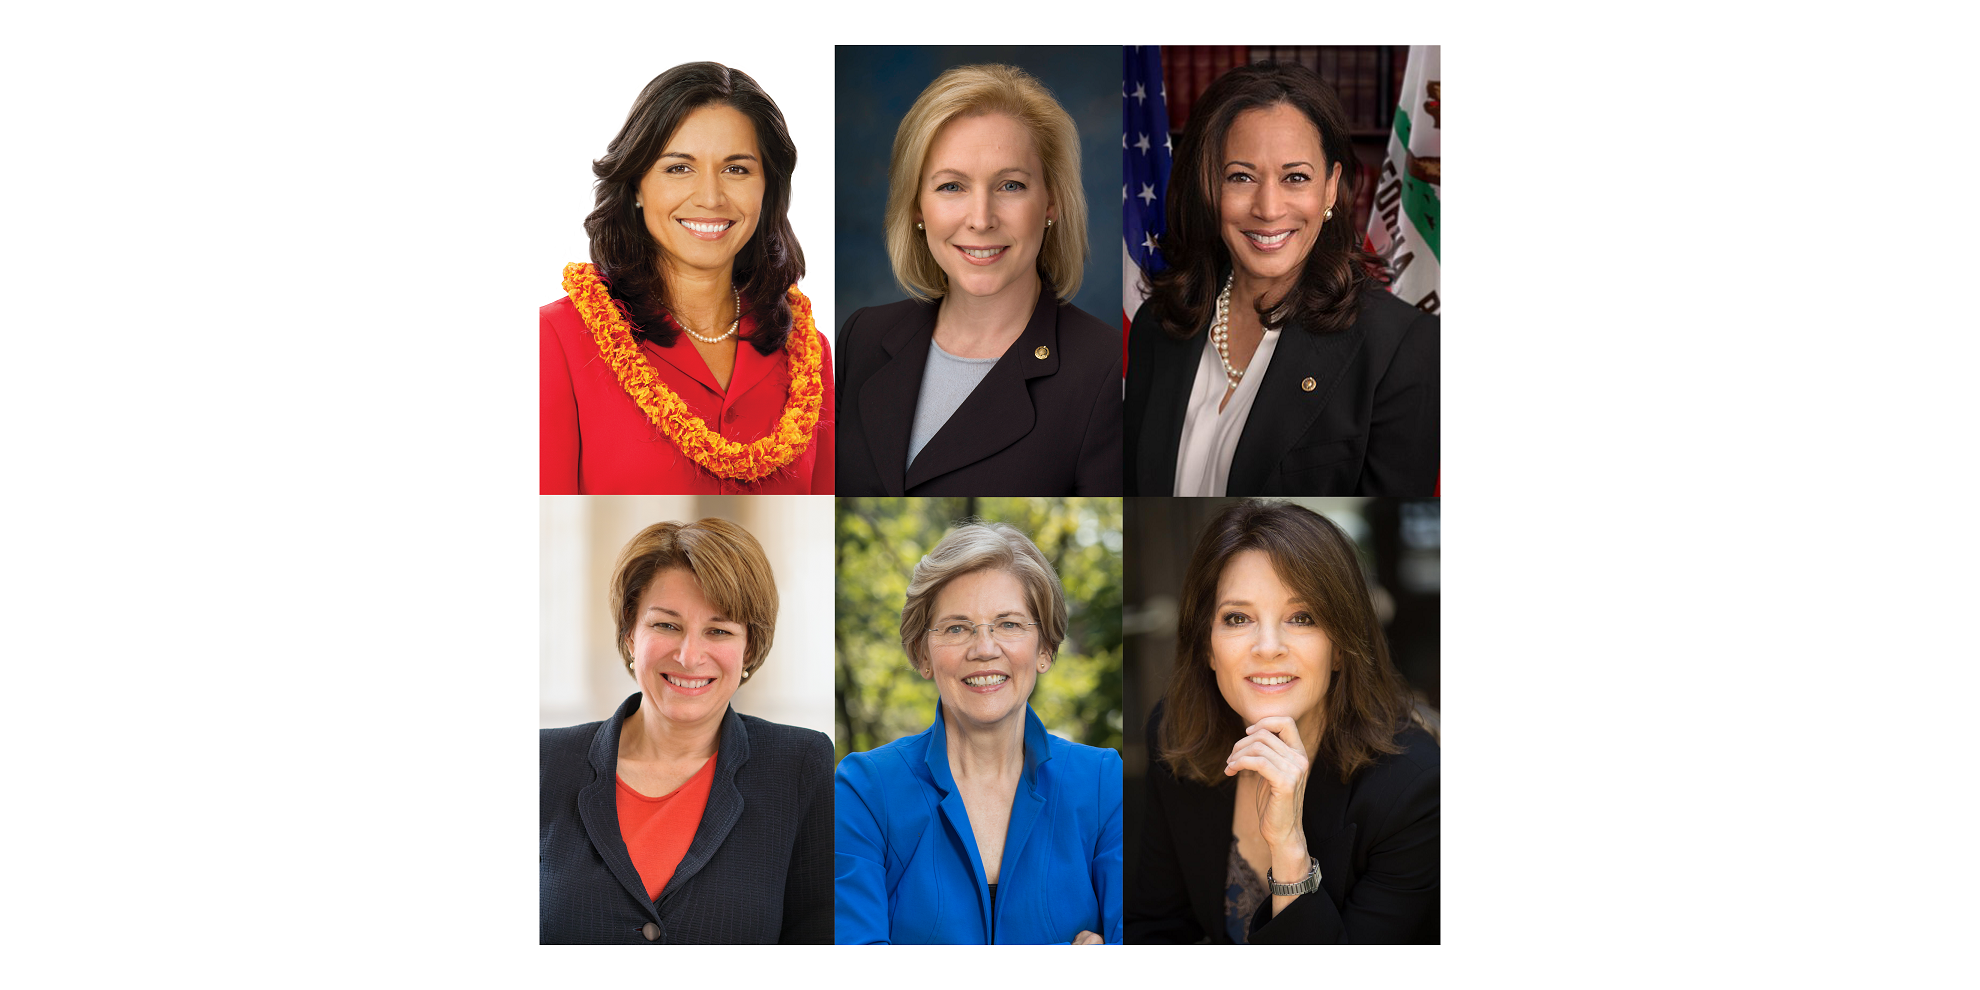 Top from left: Hawaii Rep. Tulsi Gabbard, New York Sen. Kirsten Gillibrand, California Sen. Kamala Harris. Bottom from left: Minnesota Sen. Amy Klobuchar, Massachusetts Sen. Elizabeth Warren, Marianne Williamson.